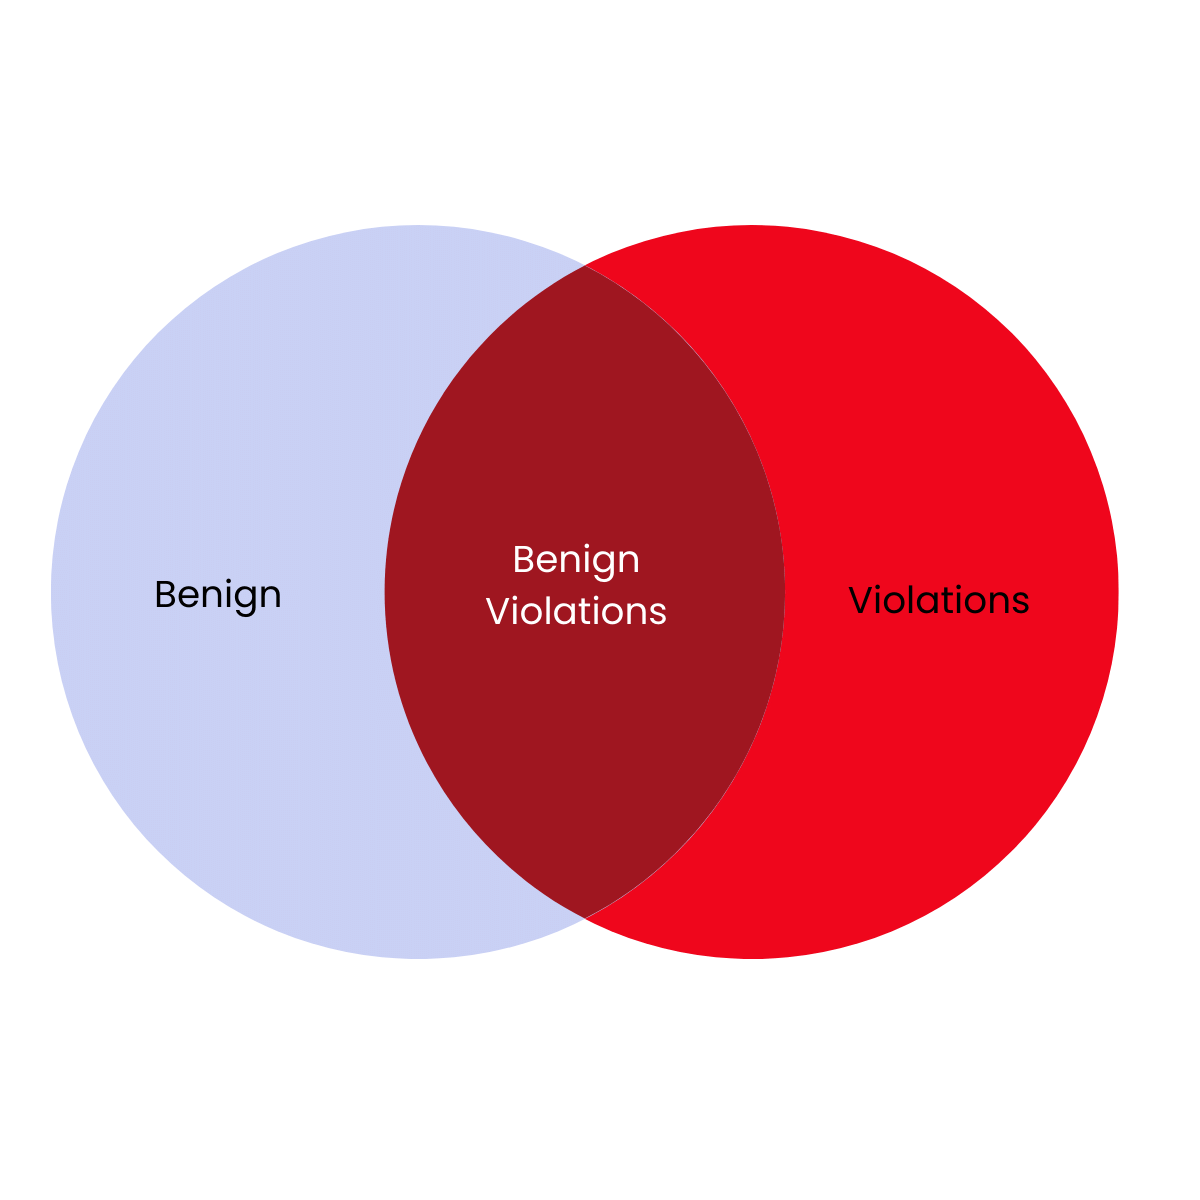 a purple and red venn diagram with benign on one side, violations on the other and benign violations in the middle